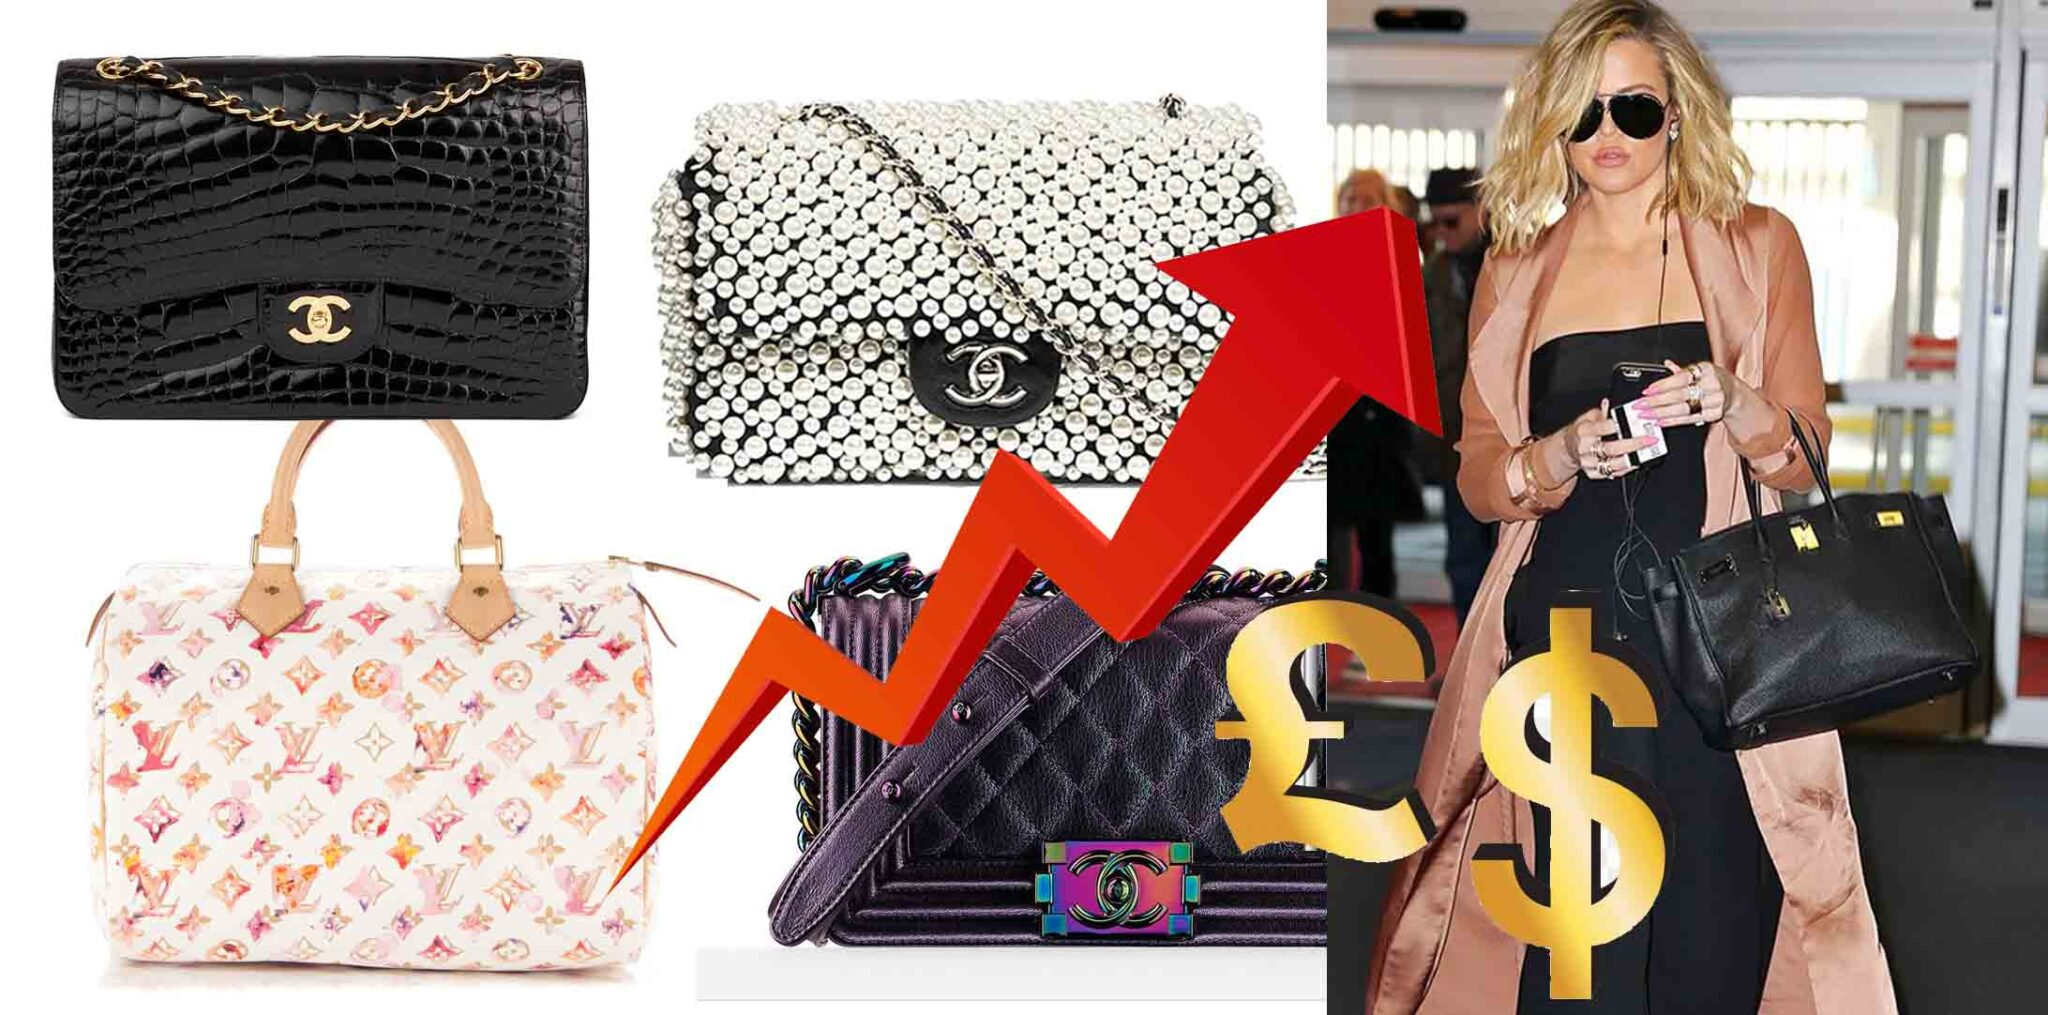 The best designer bag investments and worst investment bags by Handbagholic Thumbnail